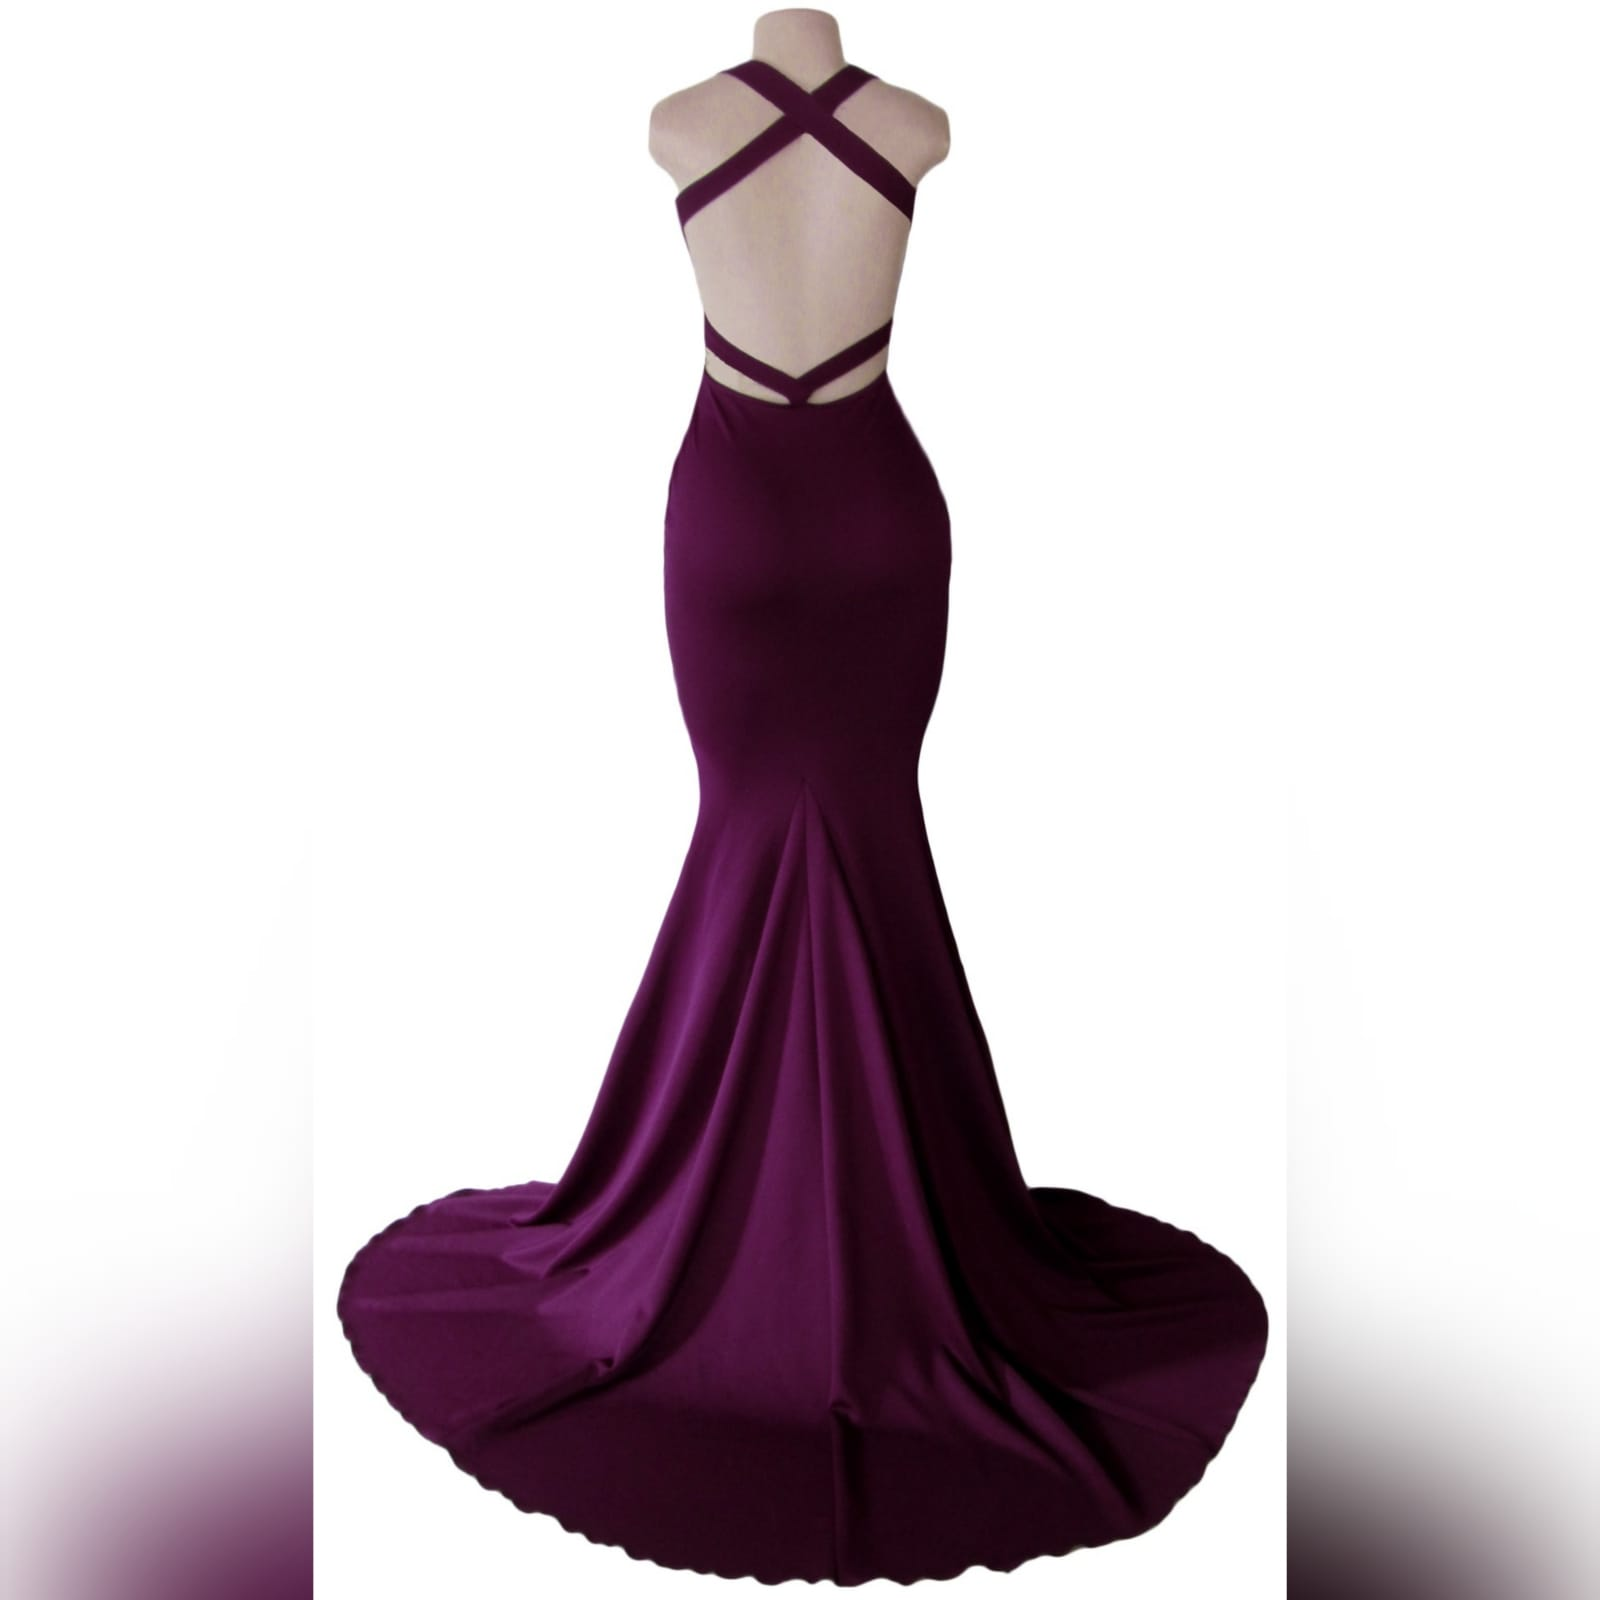 Plum soft mermaid sexy prom dress 7 plum soft mermaid sexy prom dress. With a plunging neckline, naked back with strap details and long train.